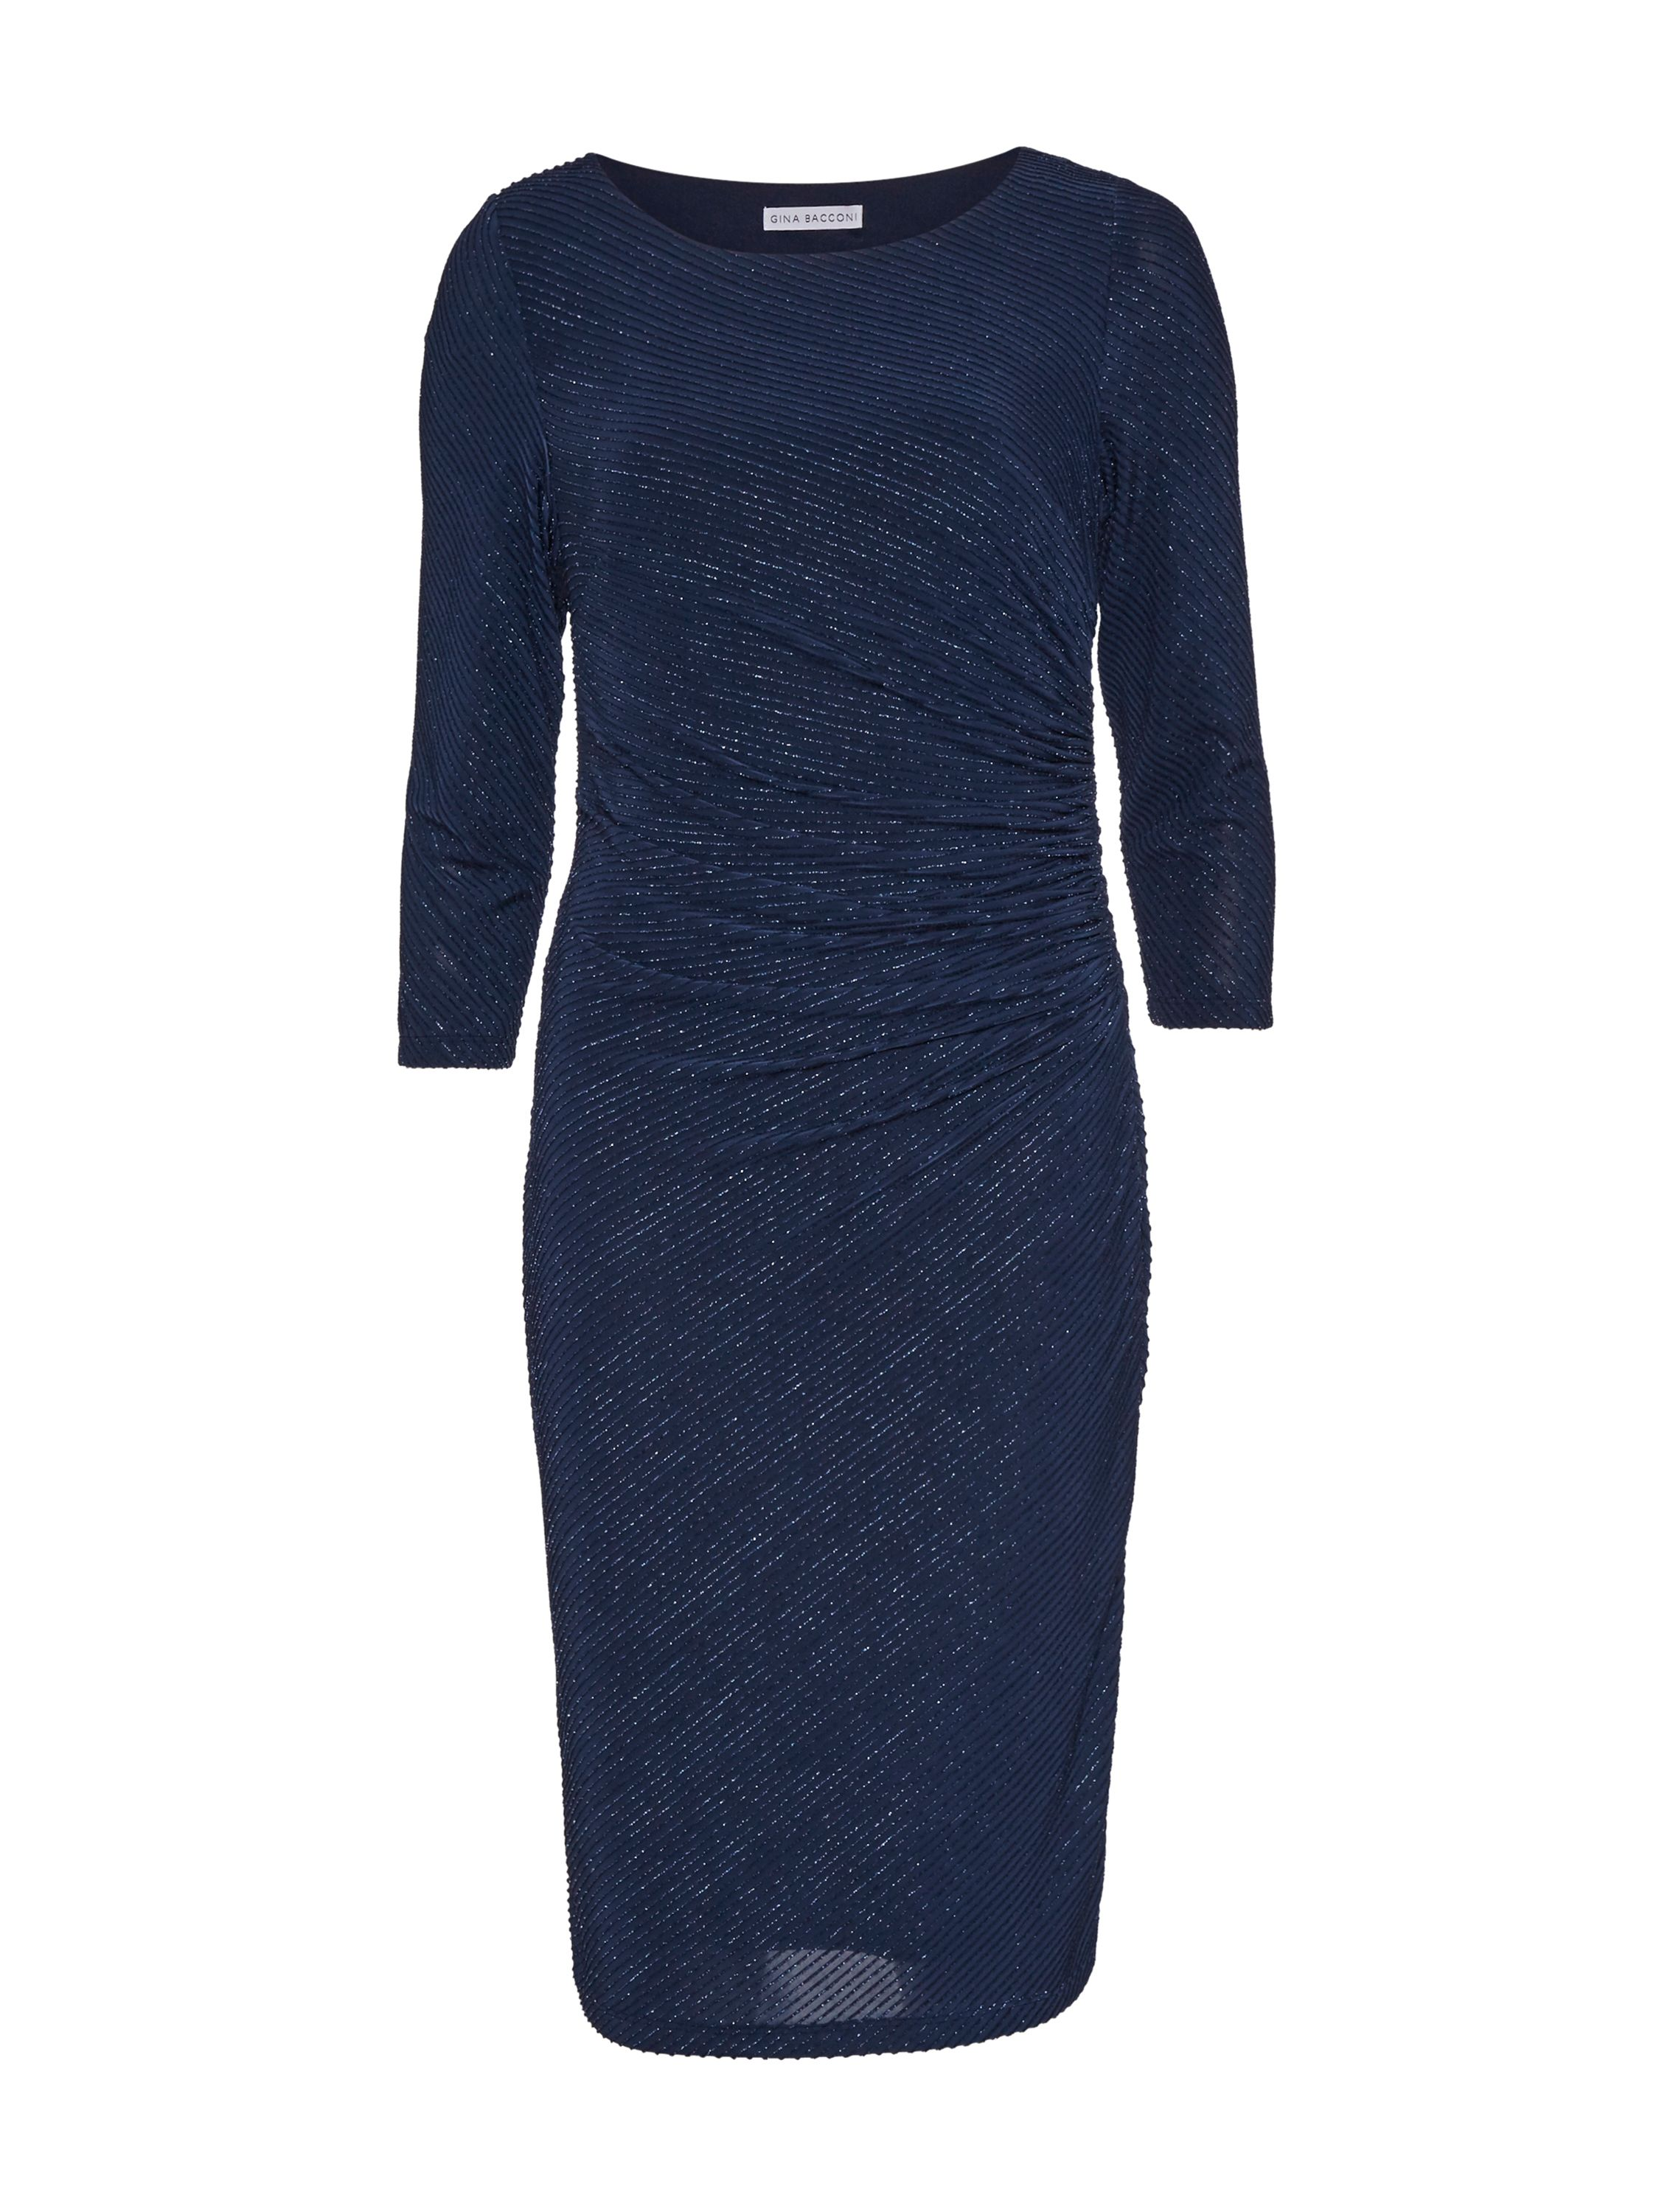 Gina Bacconi 3D Metallic Stripe Knit Dress, Blue